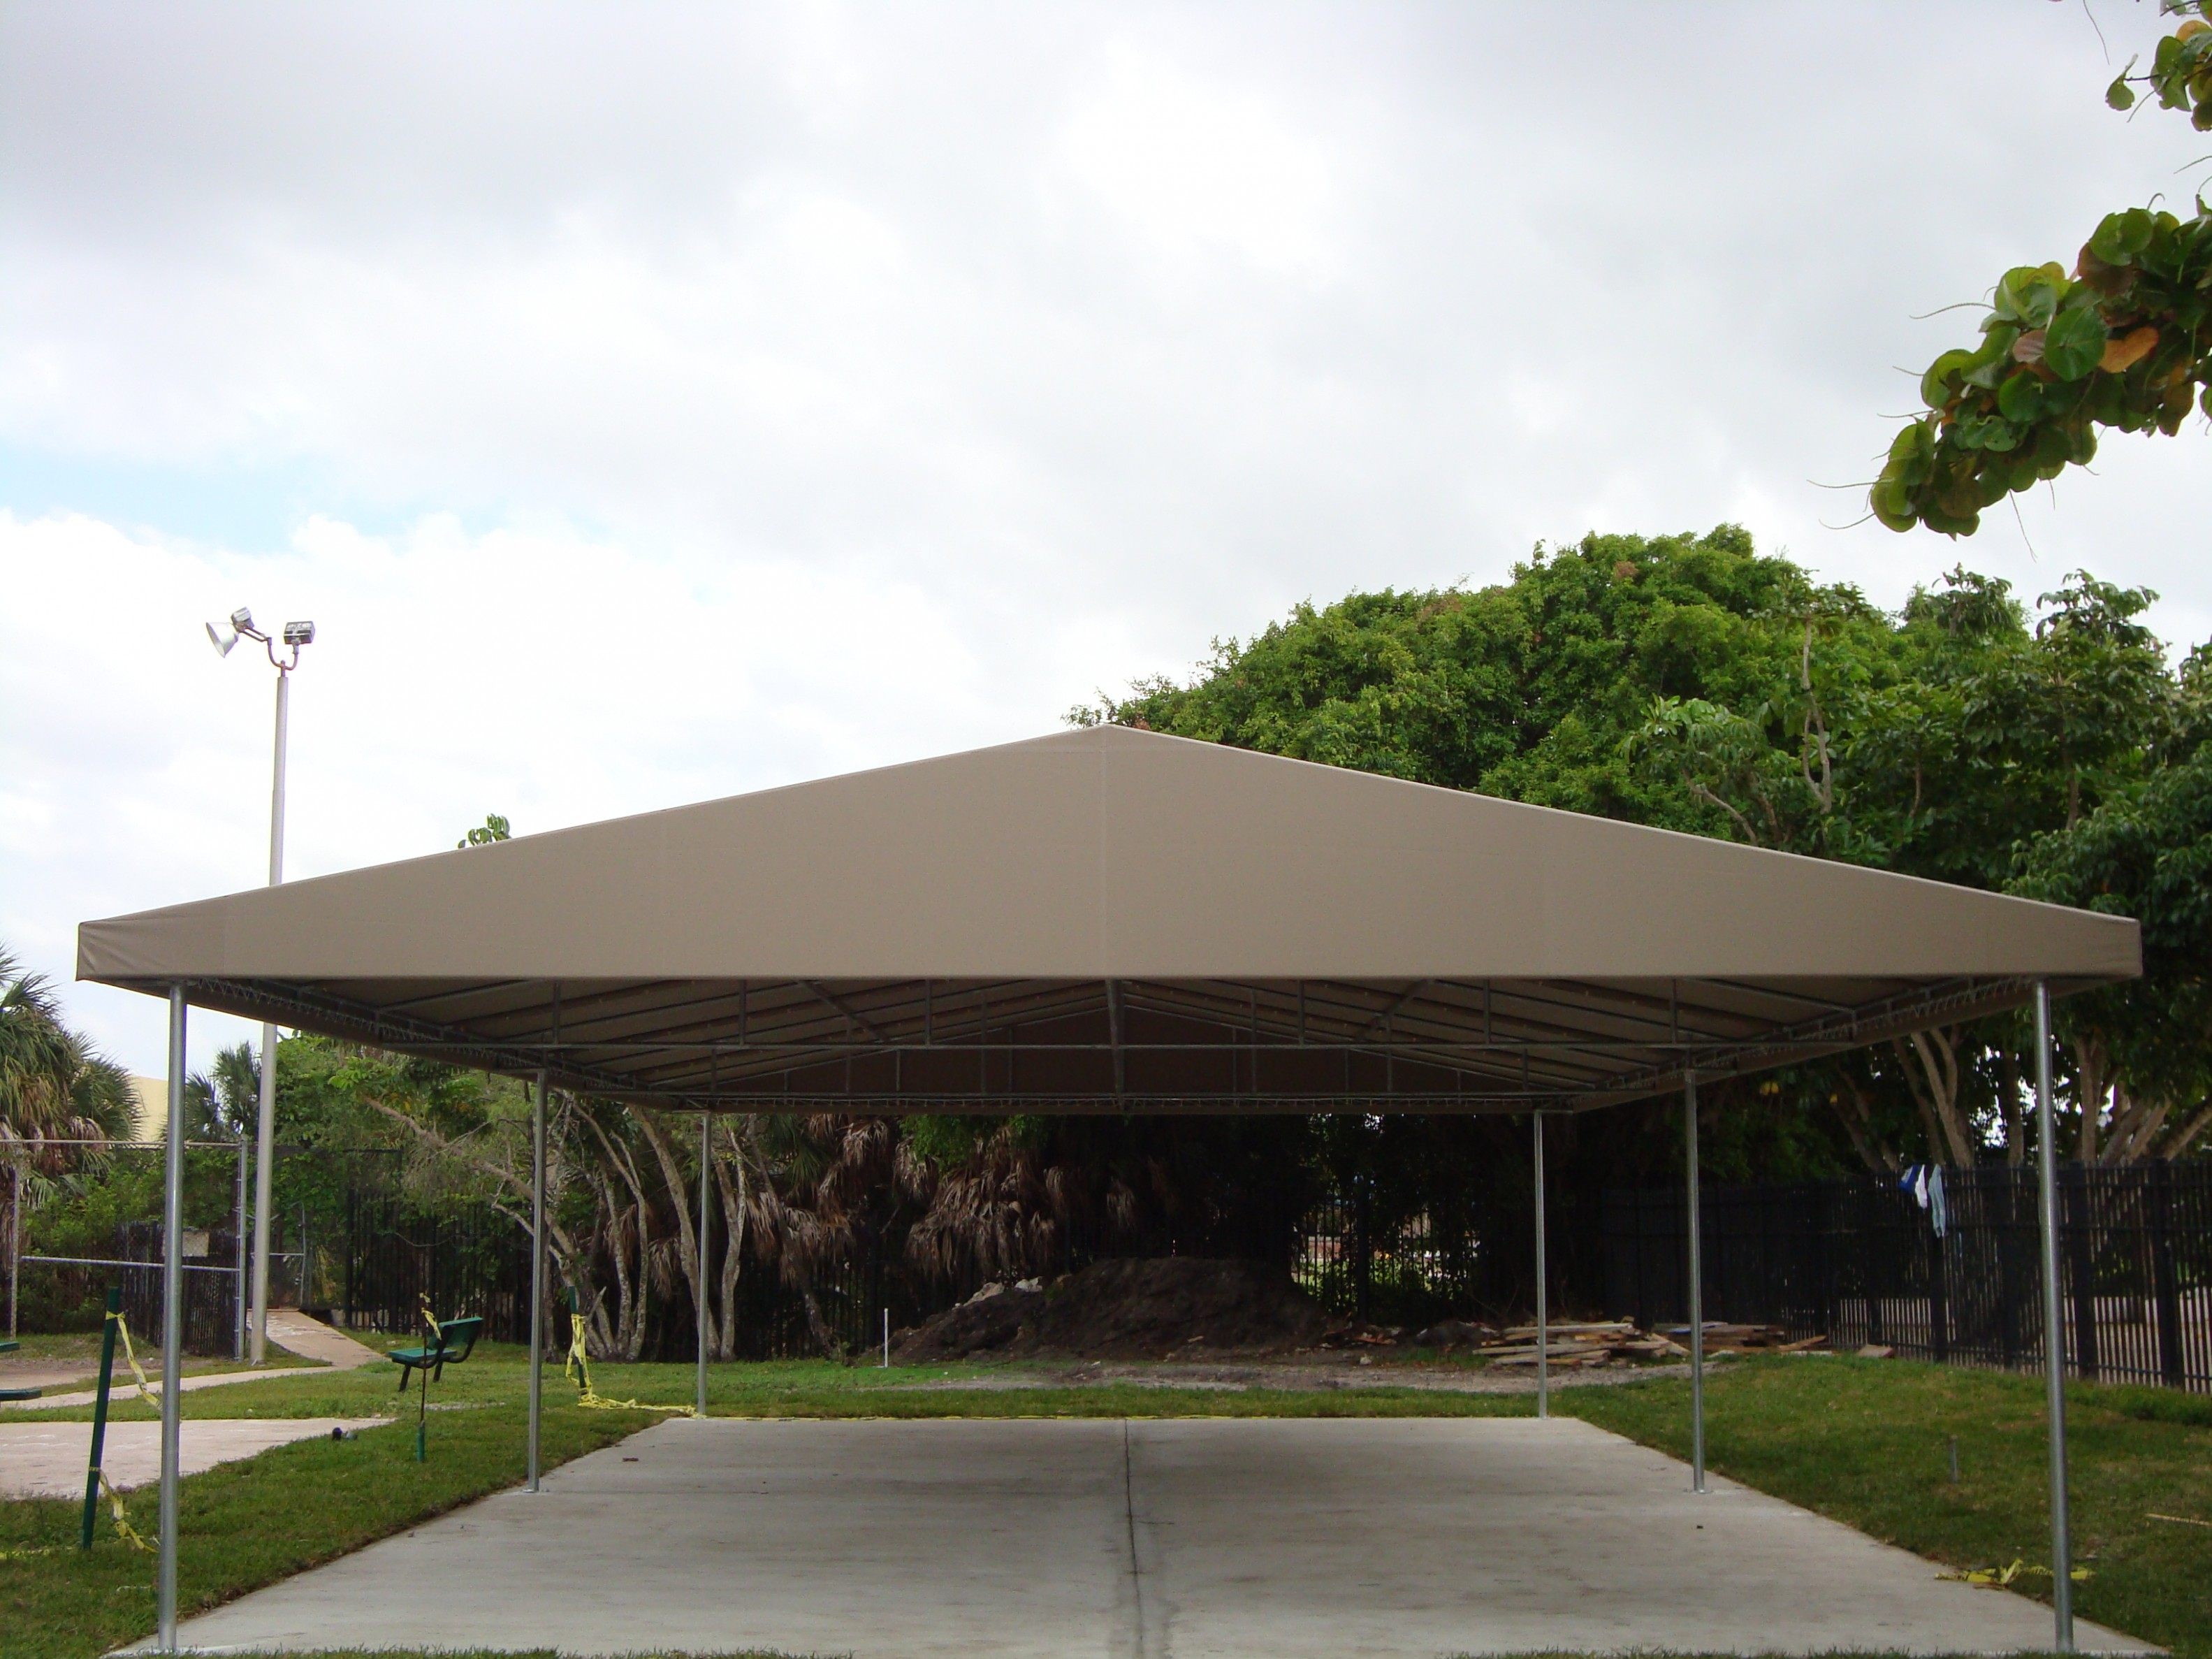 9 Brilliant Ways To Advertise Carports And Awnings | carports and awnings